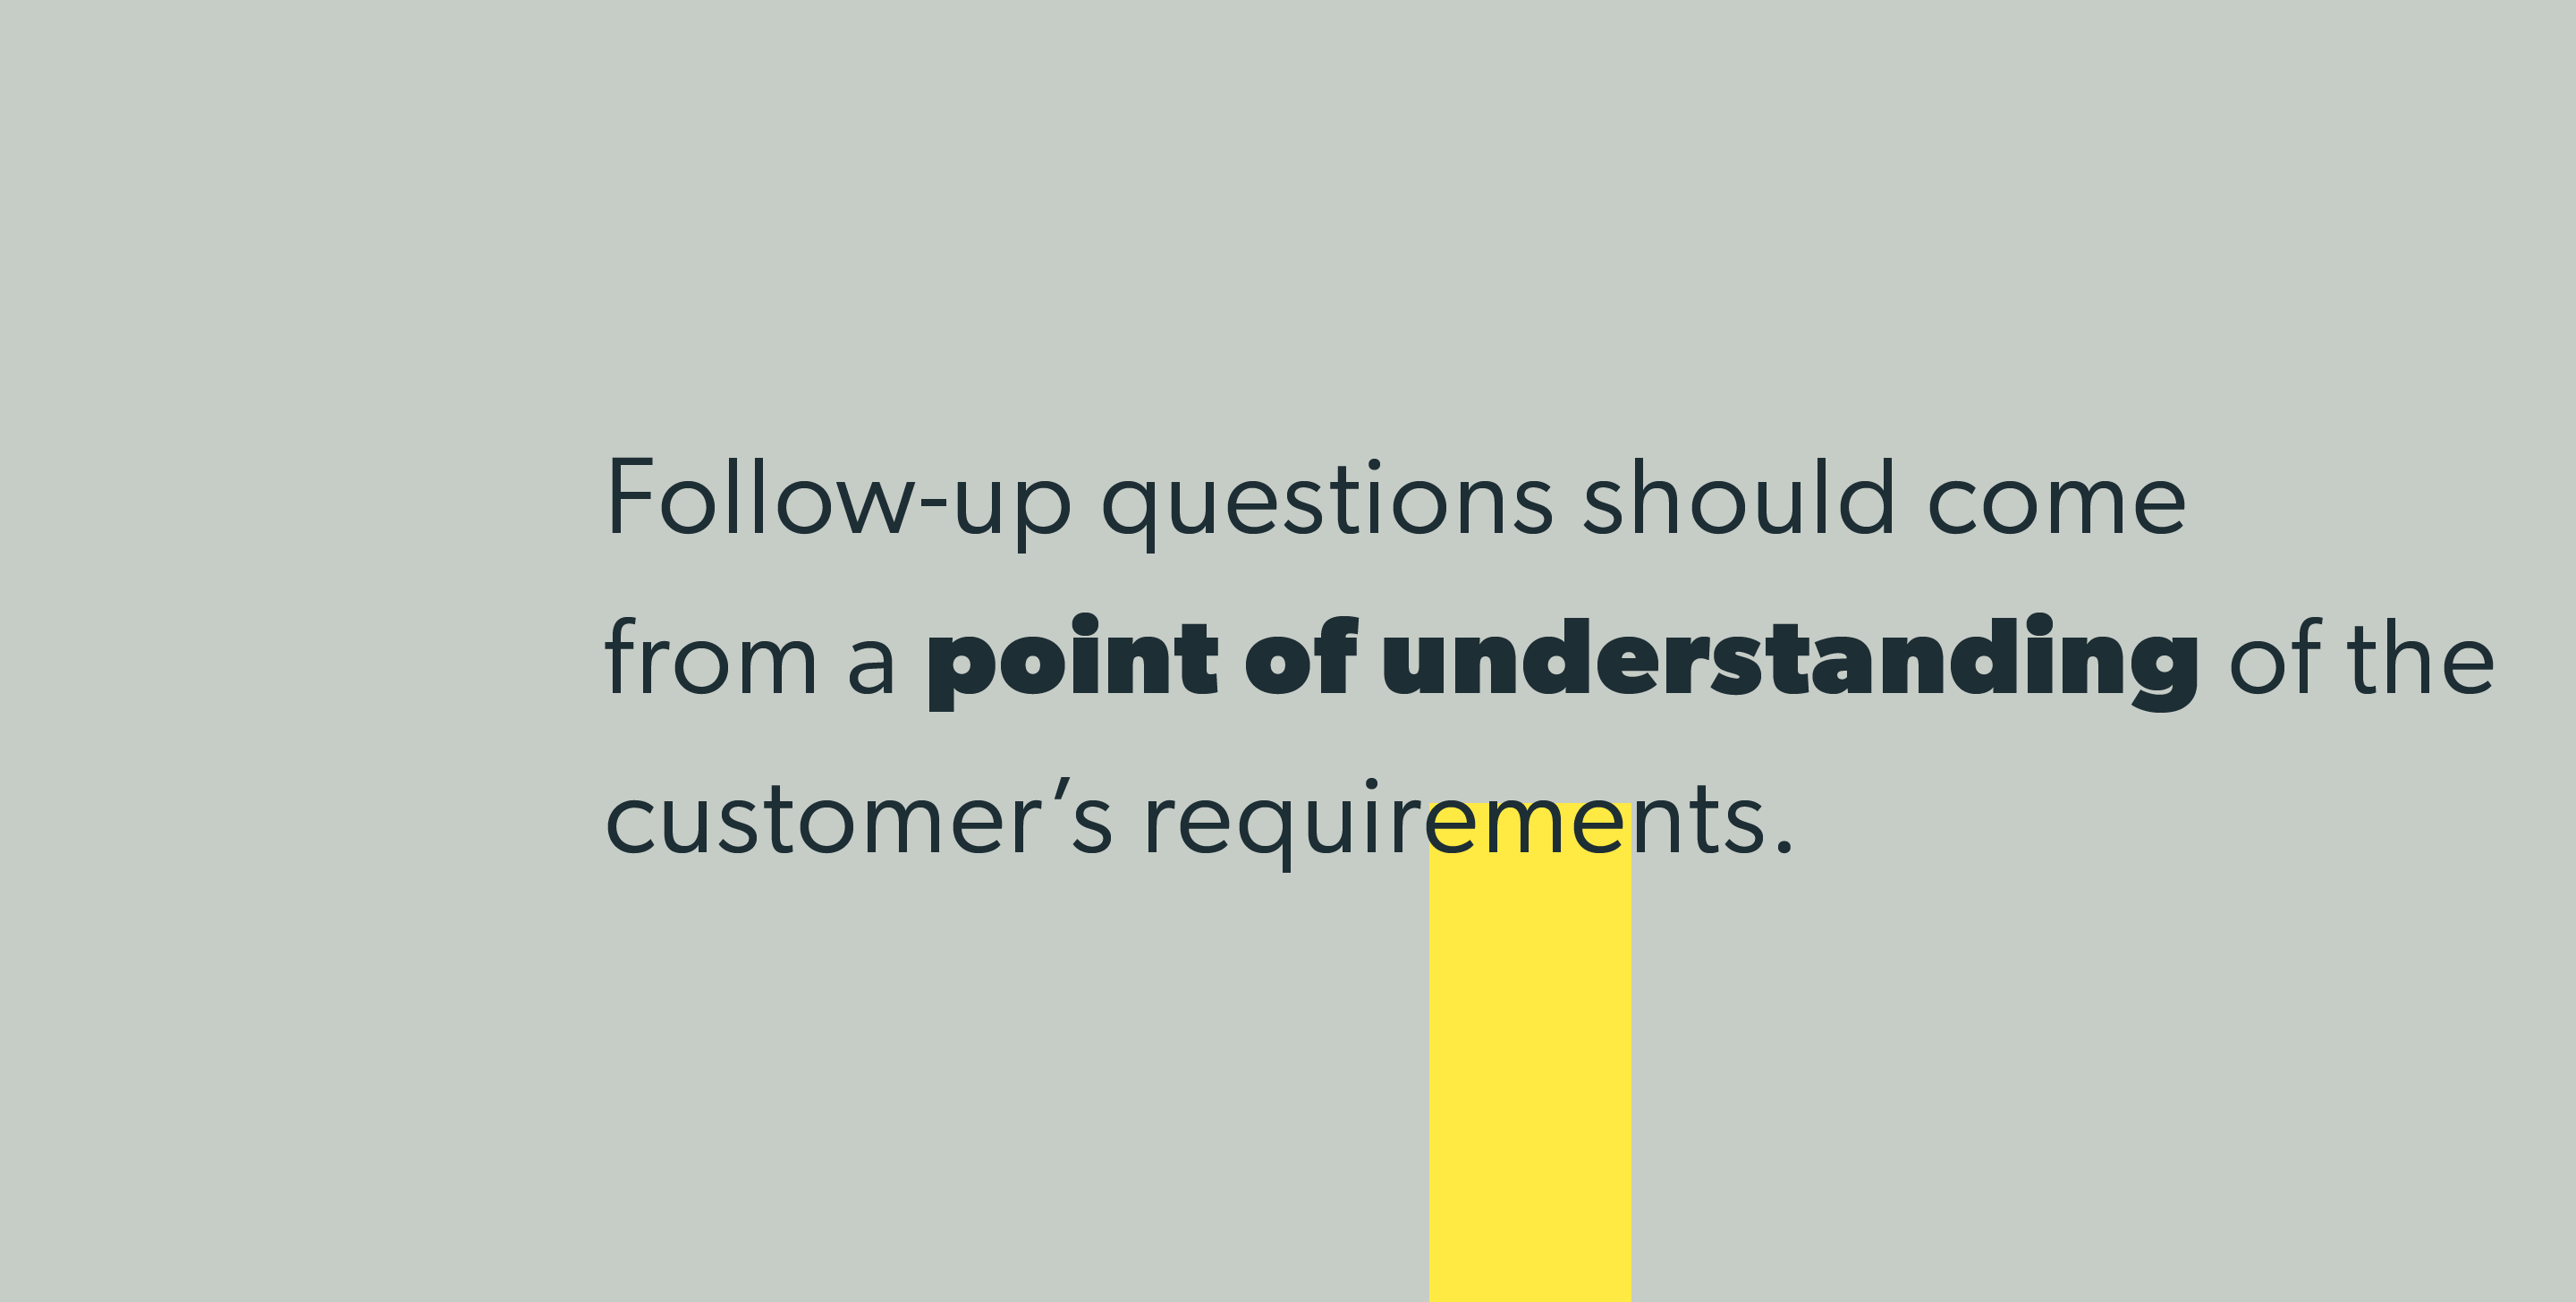 NPS follow-up questions should come from a point of understanding of the customer's requirements.